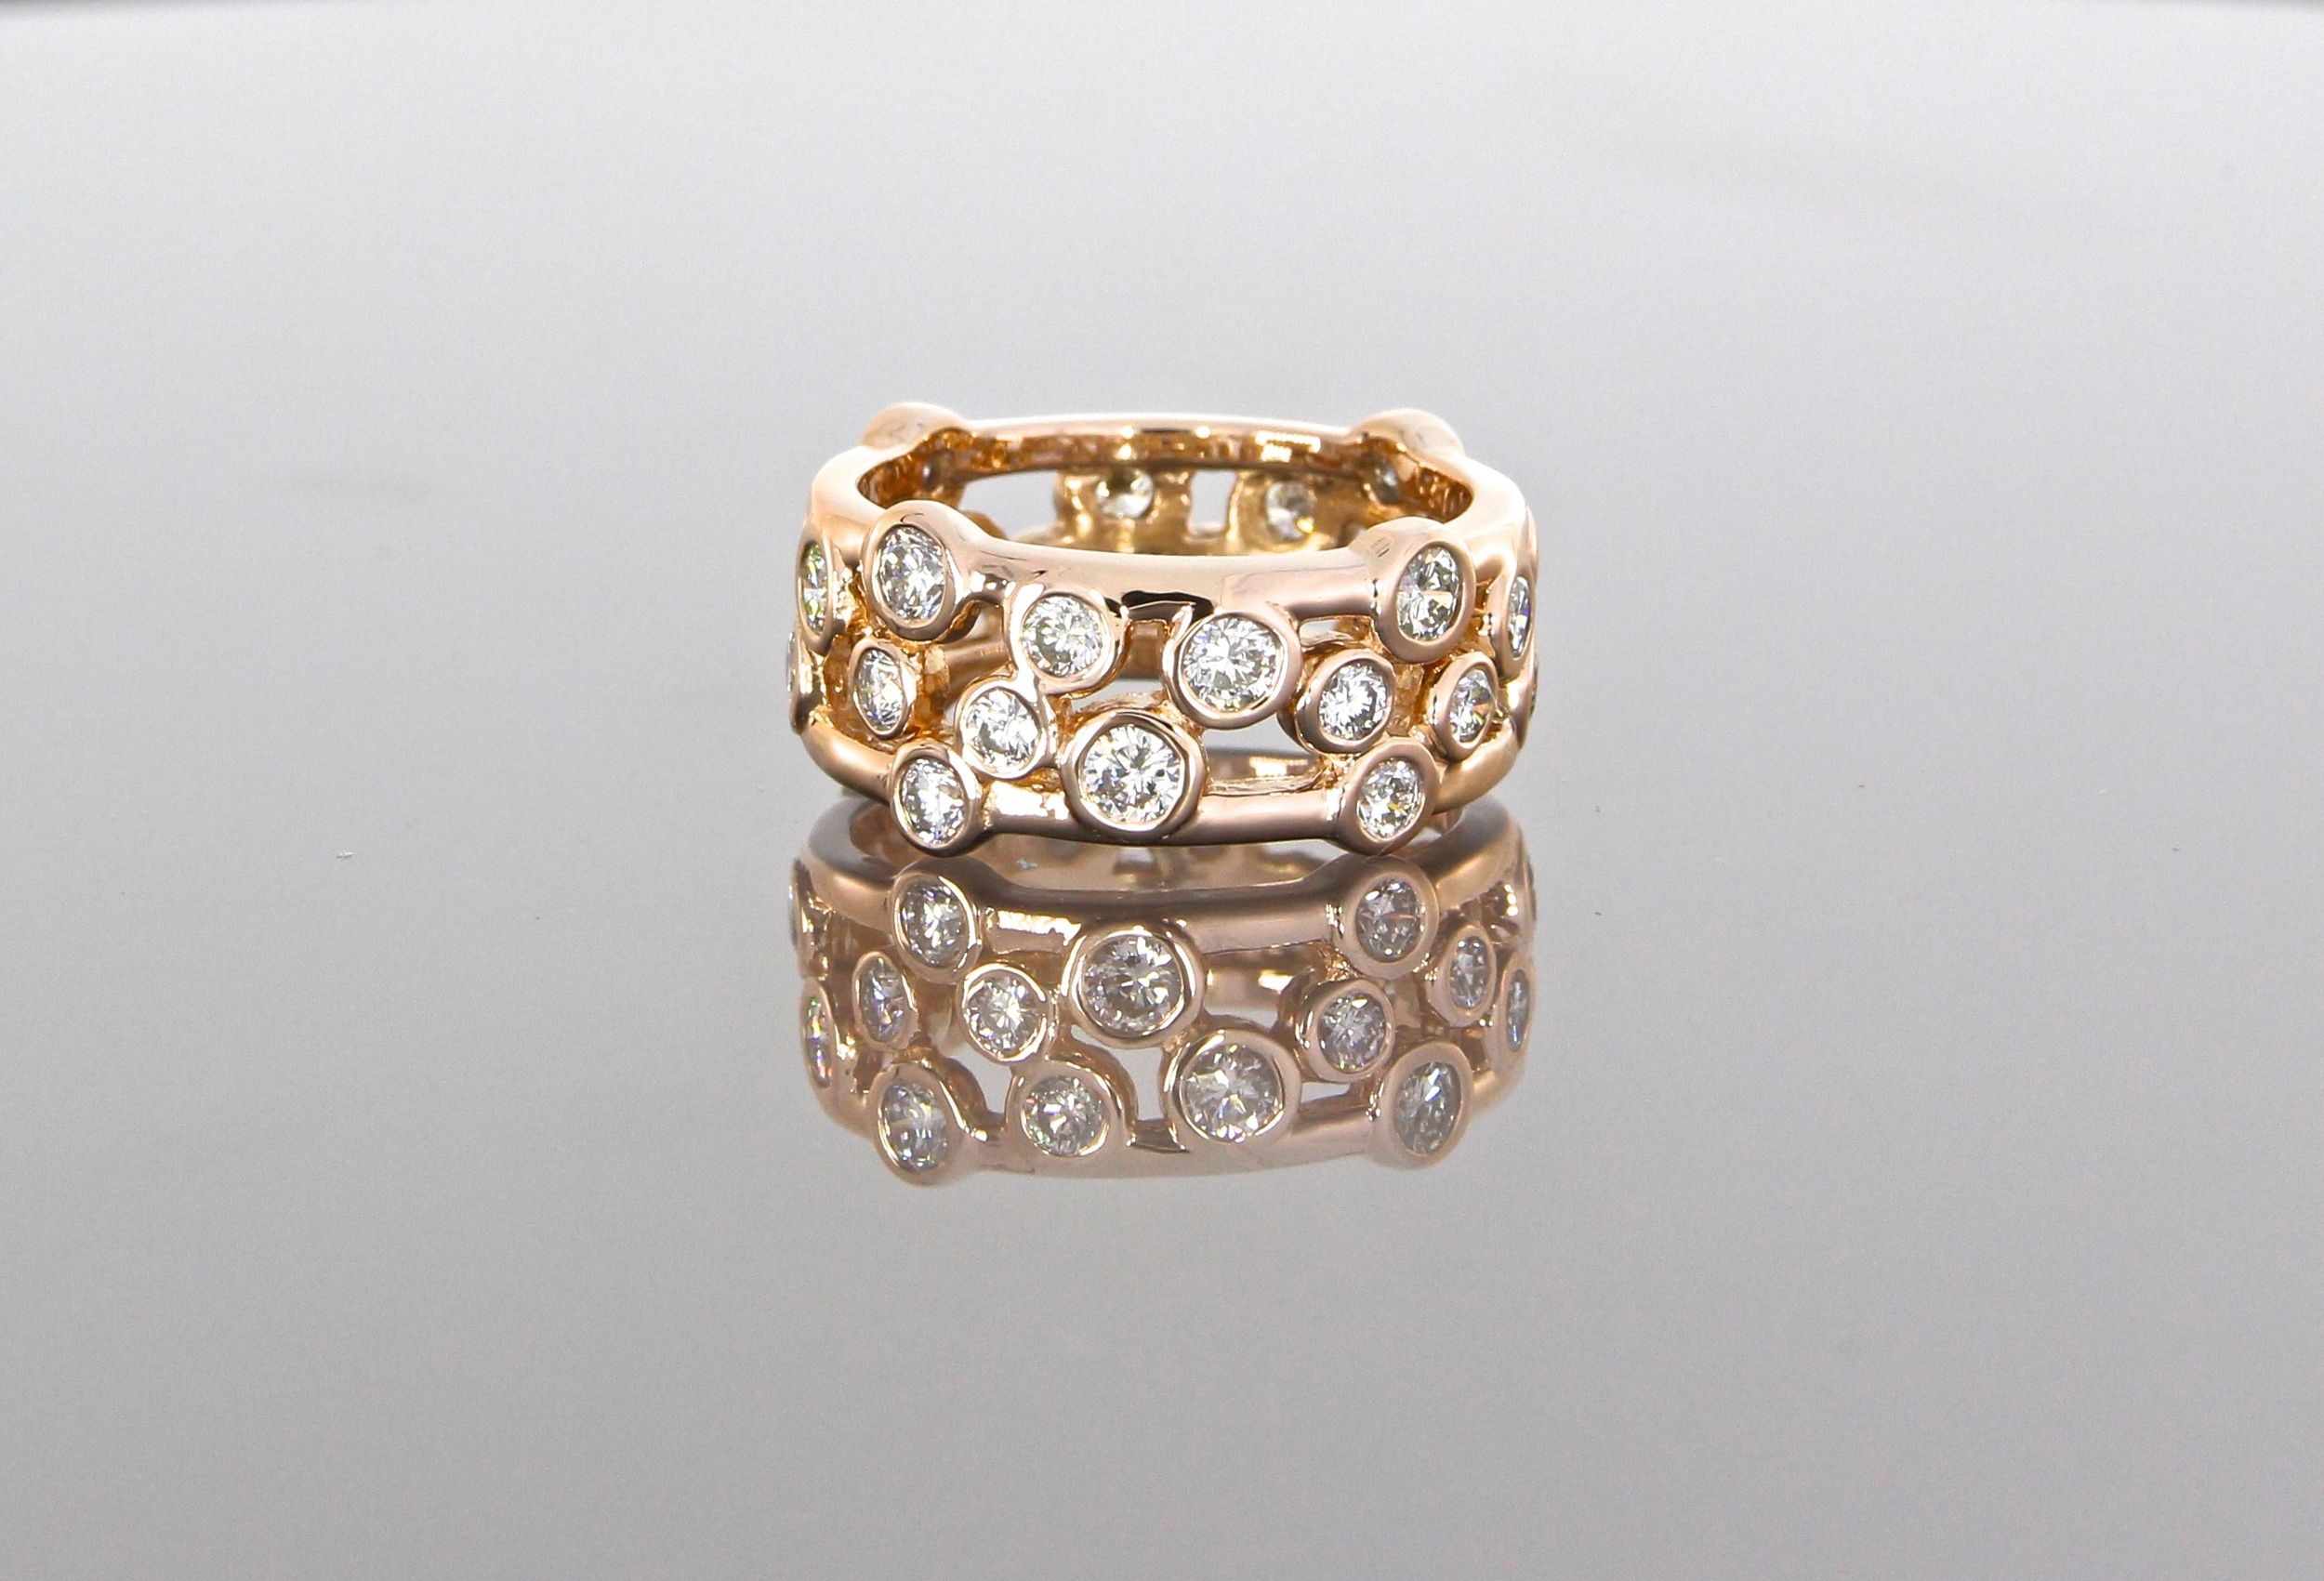 unique-eternity-style-diamond-band-womens-wedding-white-gold-craft-revival-jewelry-store-grand-rapids